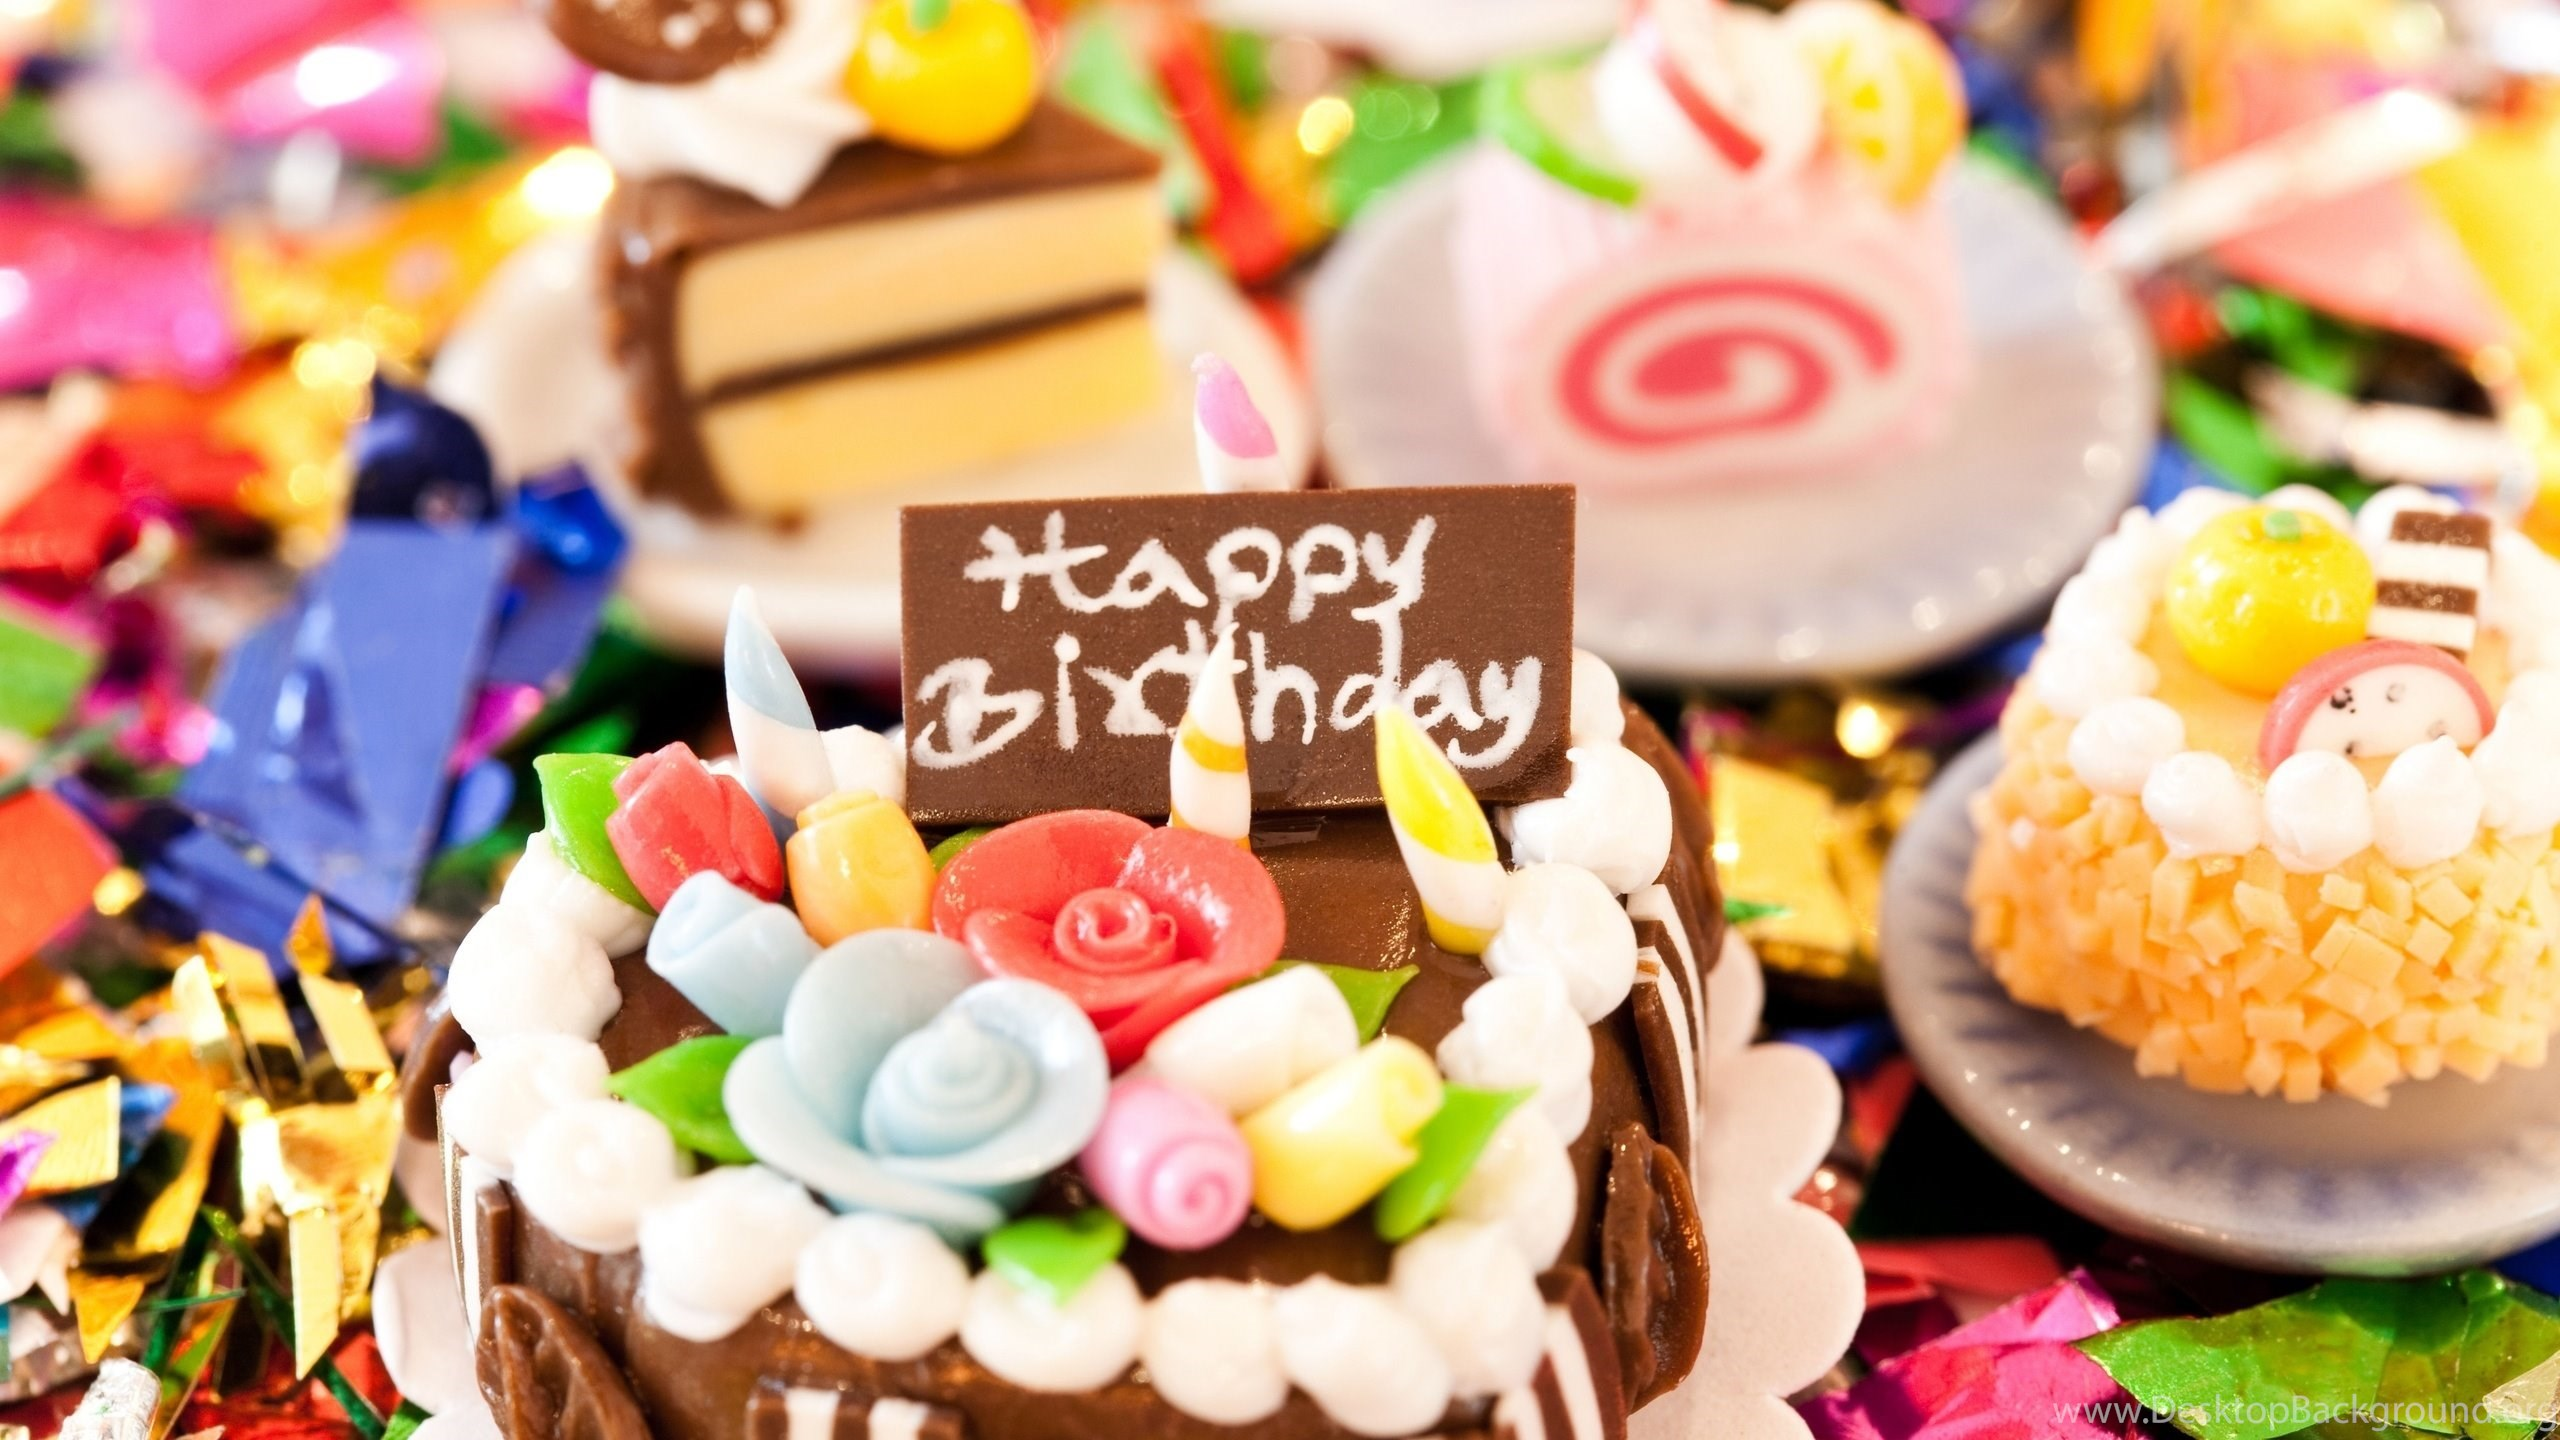 Happy Birthday Cake Wallpapers Hd Desktop Background